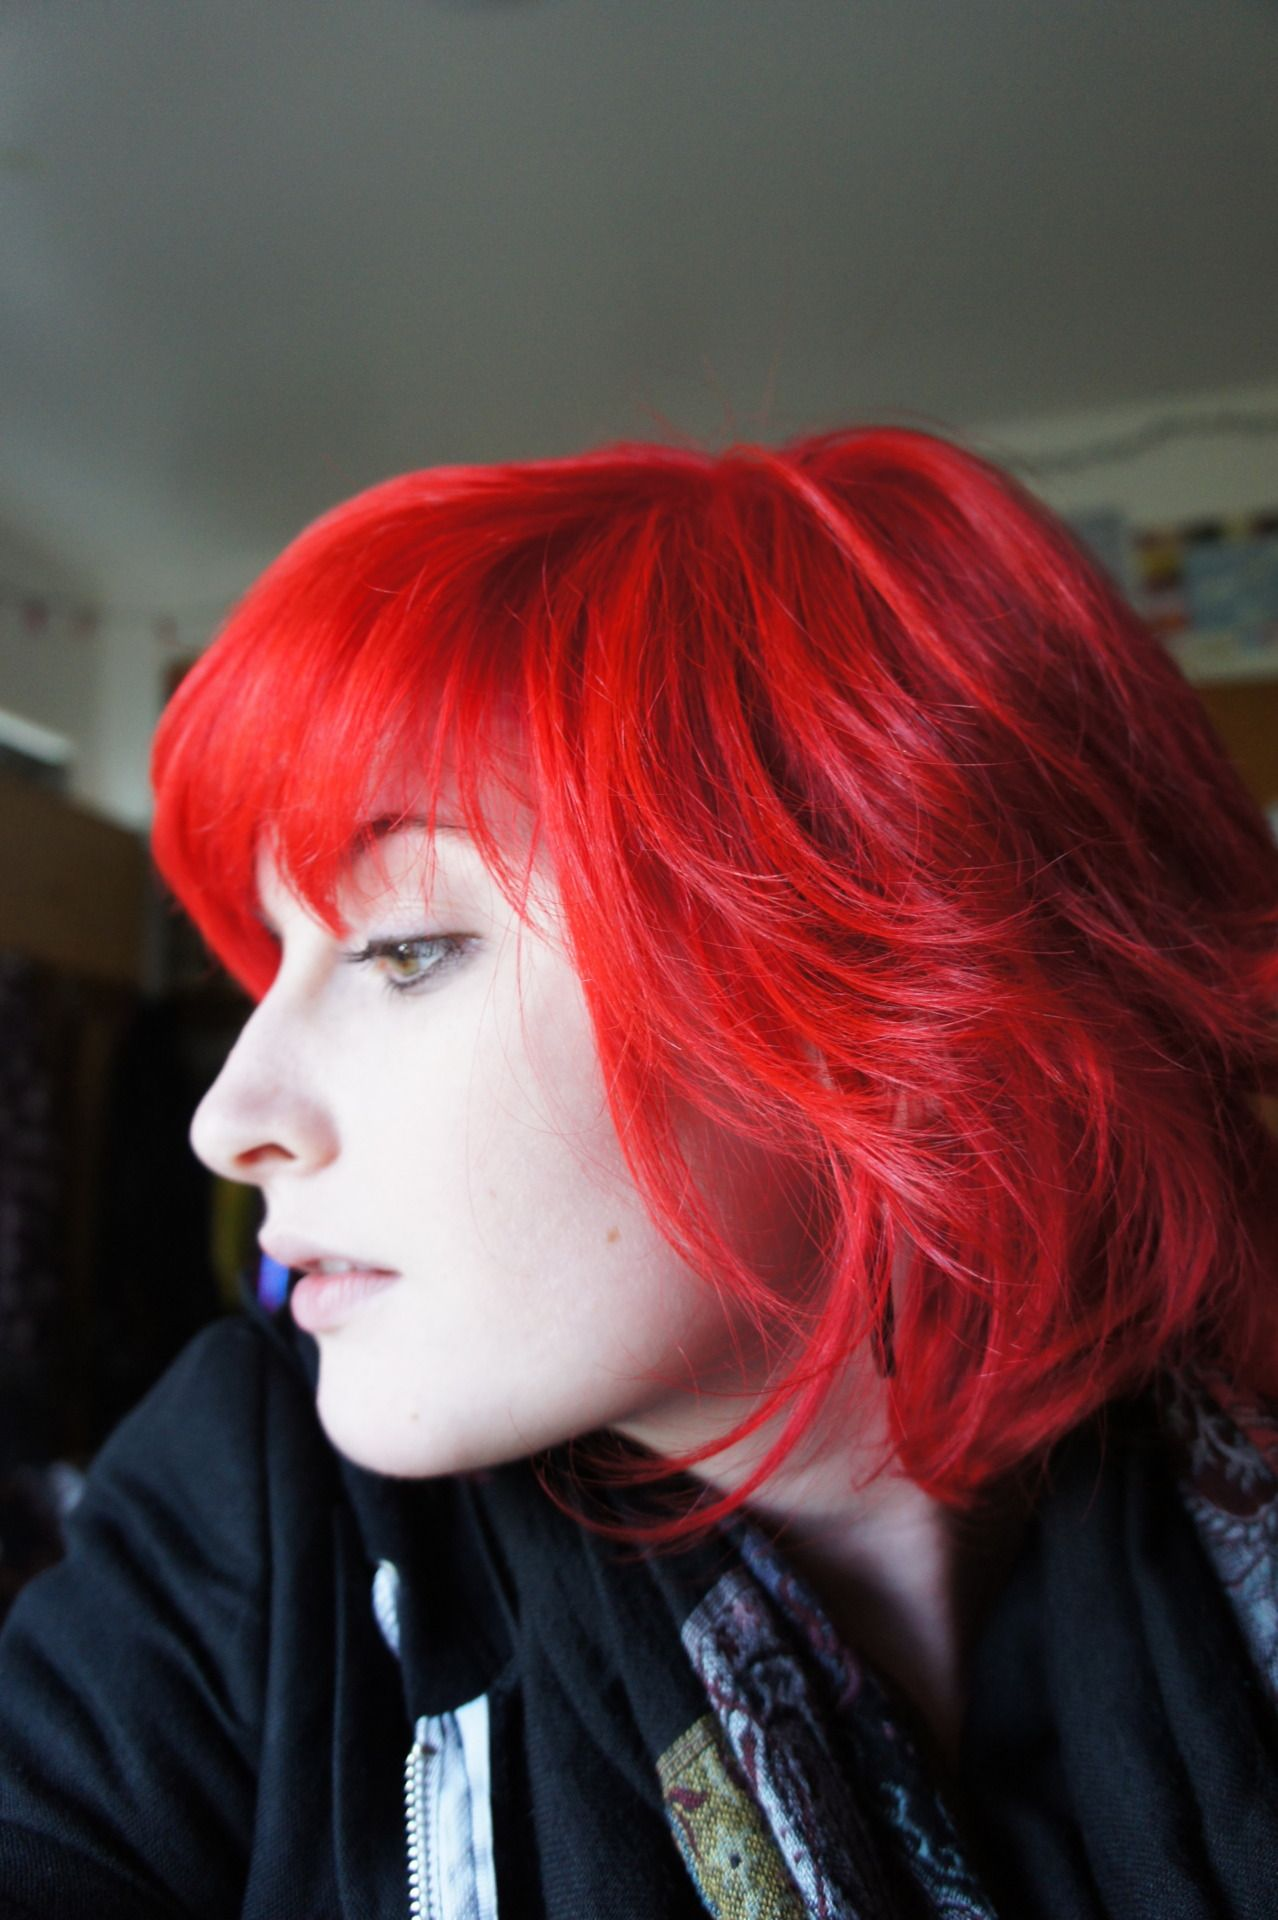 Short red hair if only work let me wear my hair this bright hair